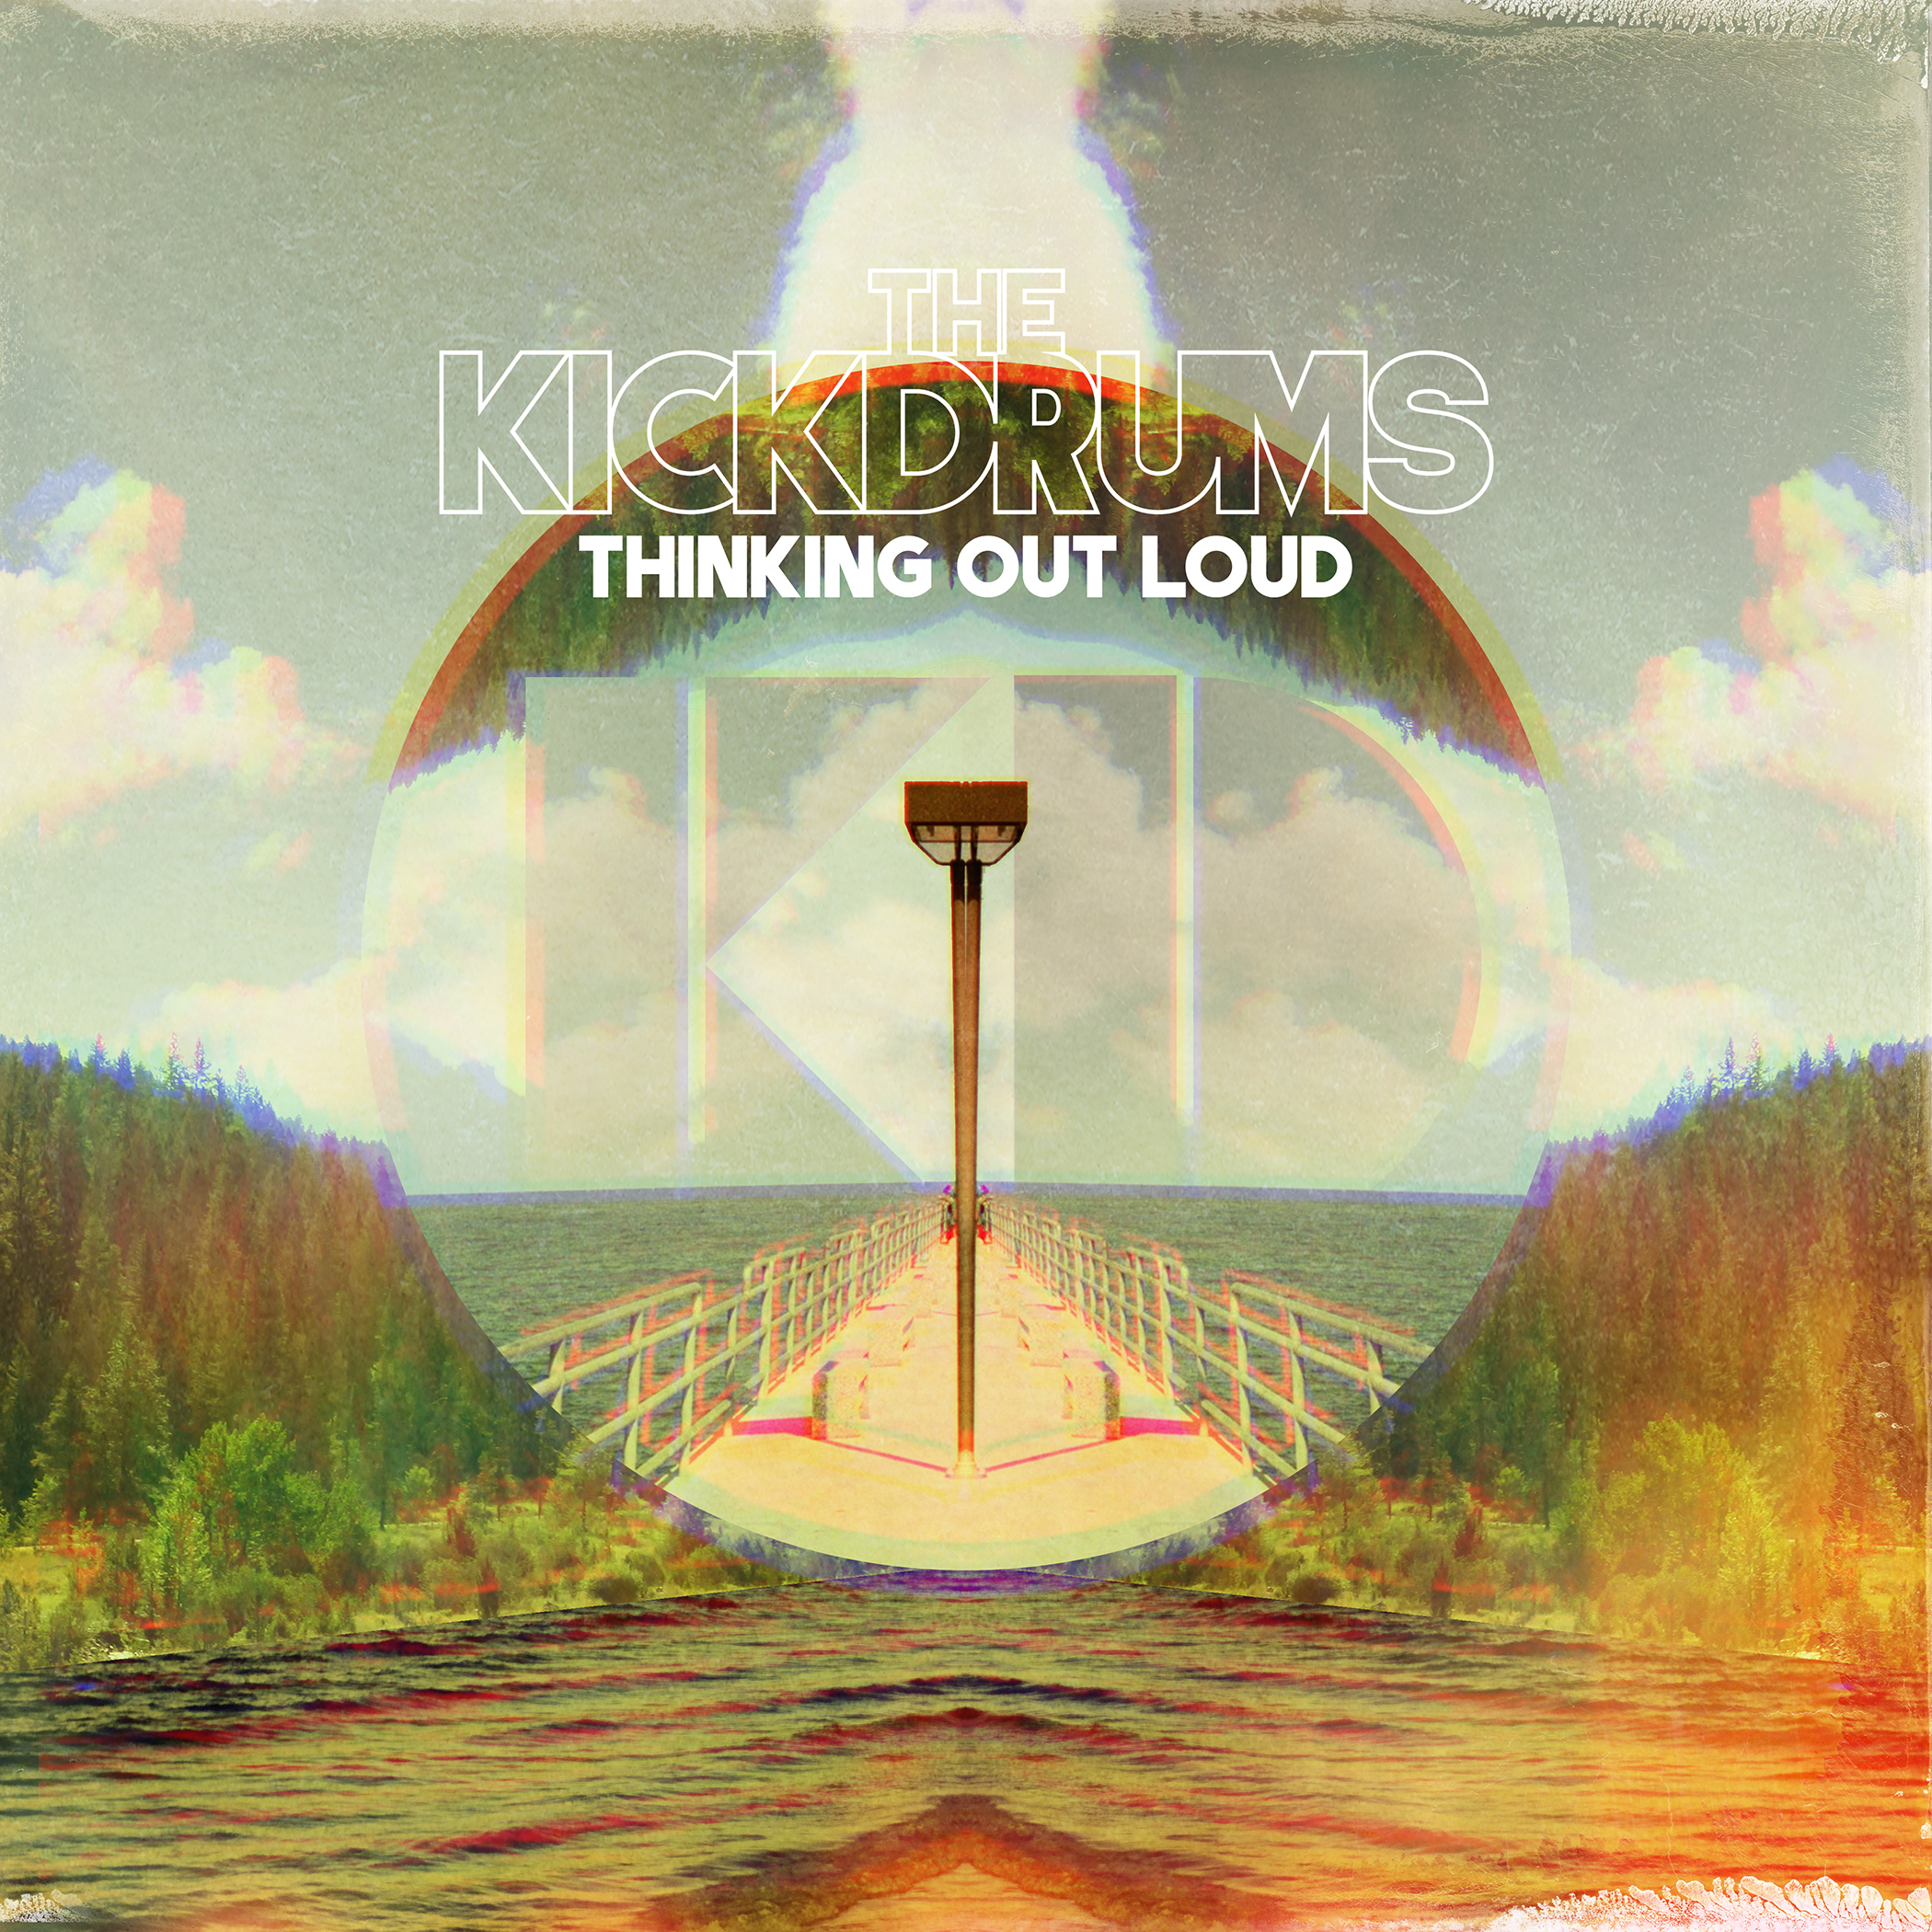 The Kickdrums - Thinking Out Loud